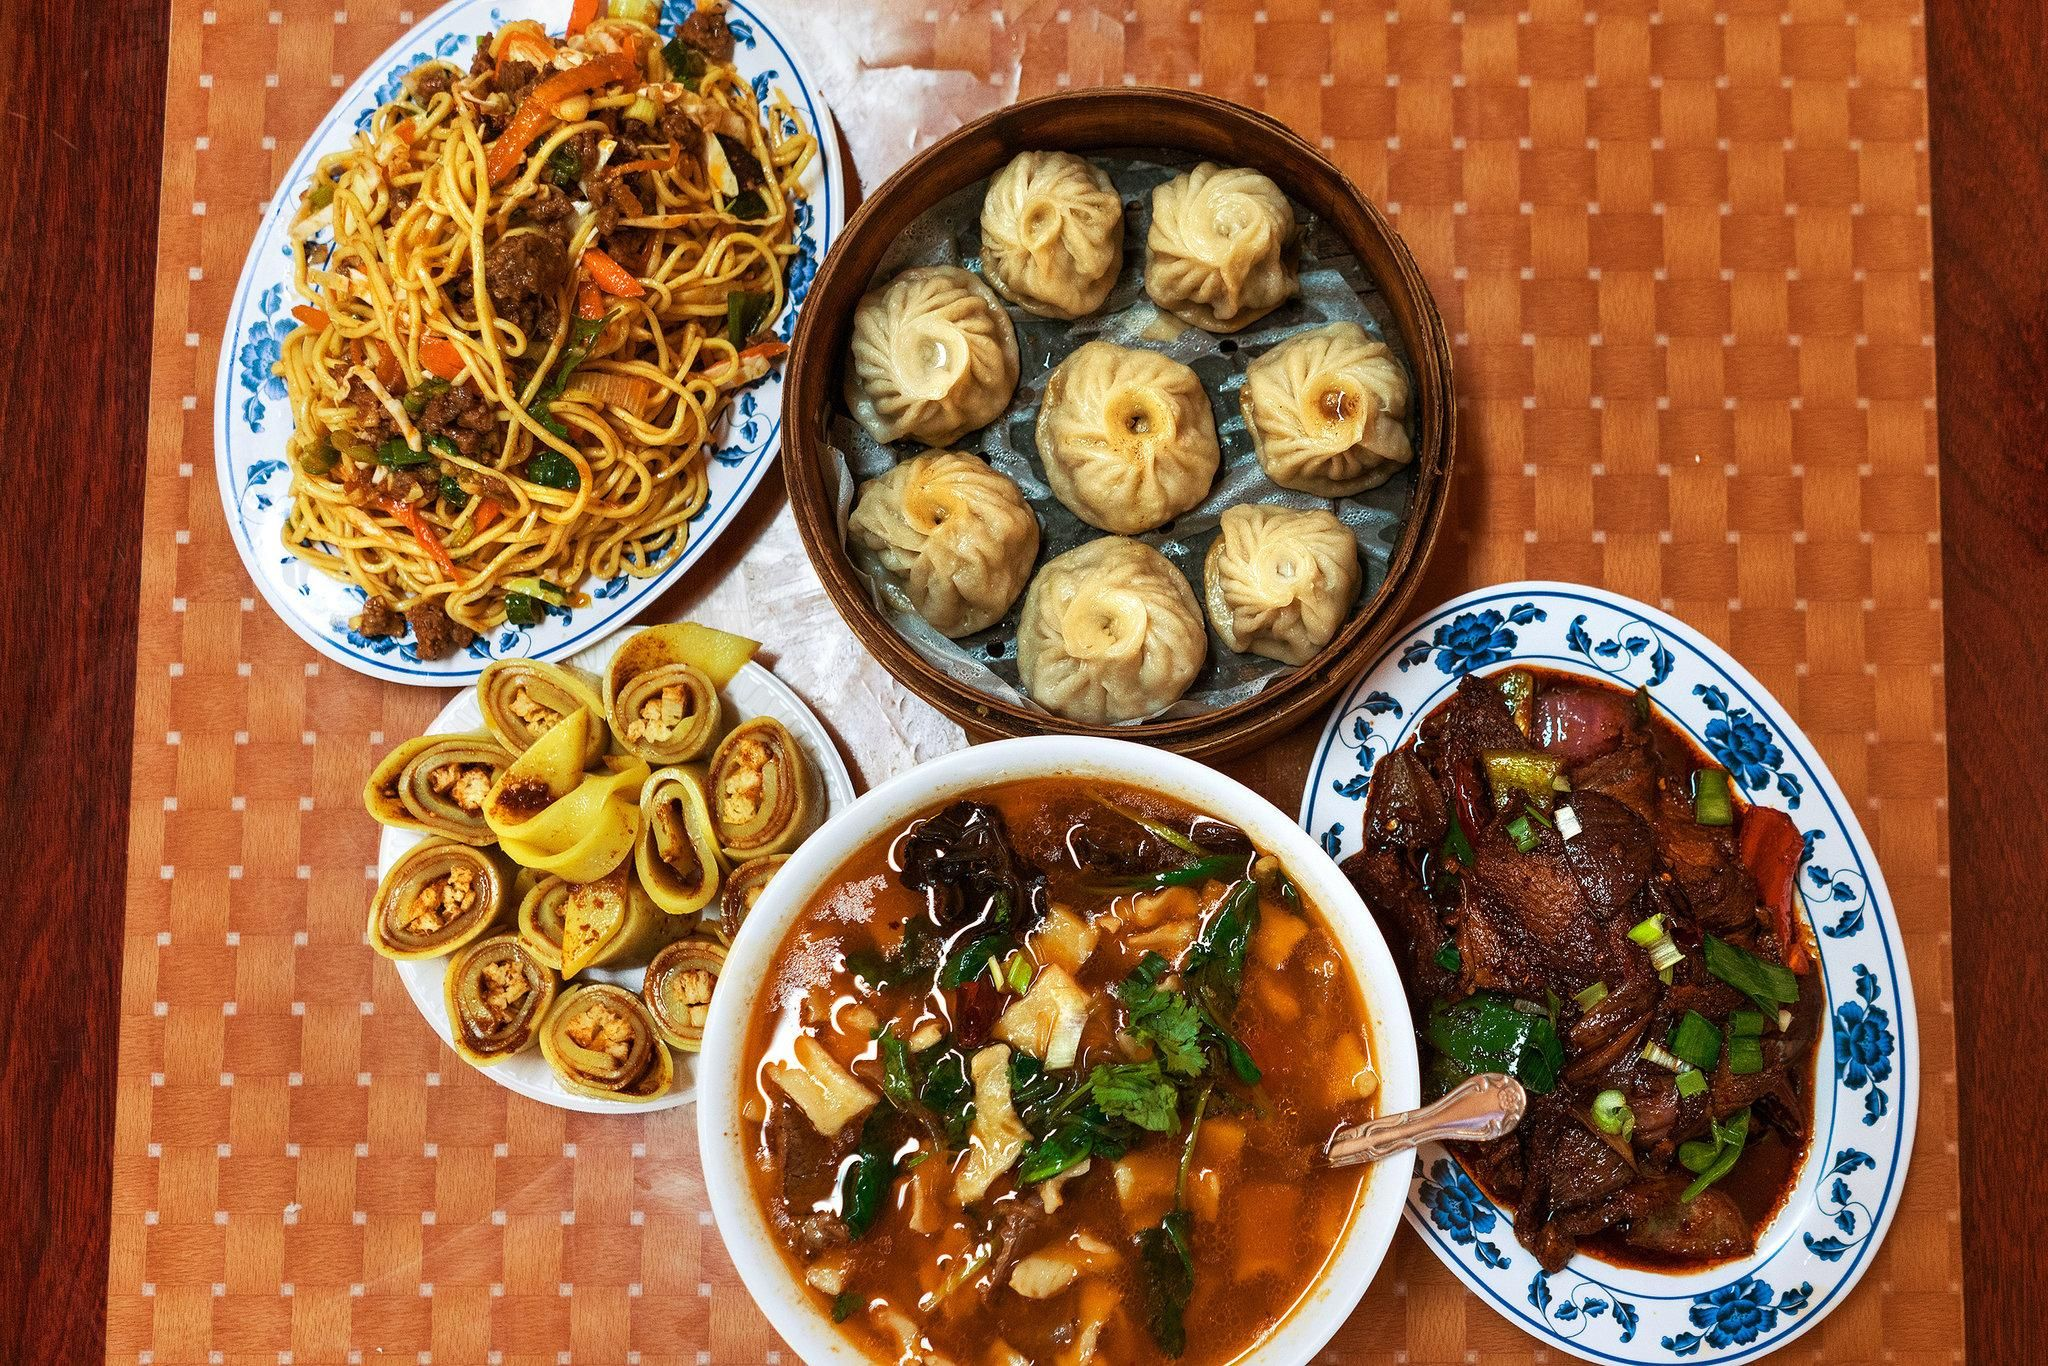 A Mazelike Trail To Tibet At Lhasa Fast Food In Queens Food Tibetan Food Fast Food Reviews